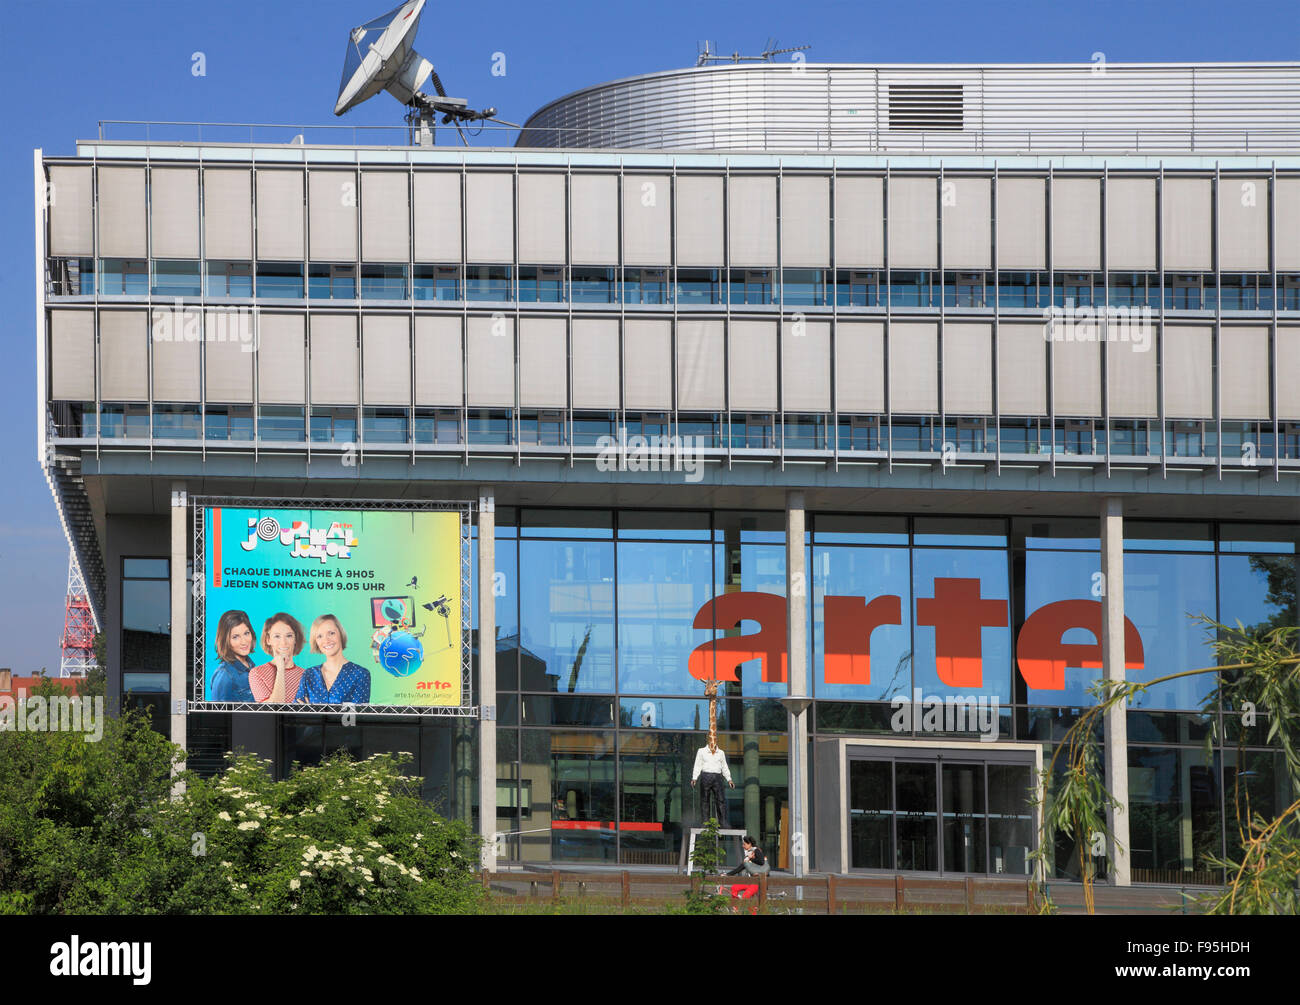 Arte Tv Reportage Tv Network Stock Photos Tv Network Stock Images Alamy